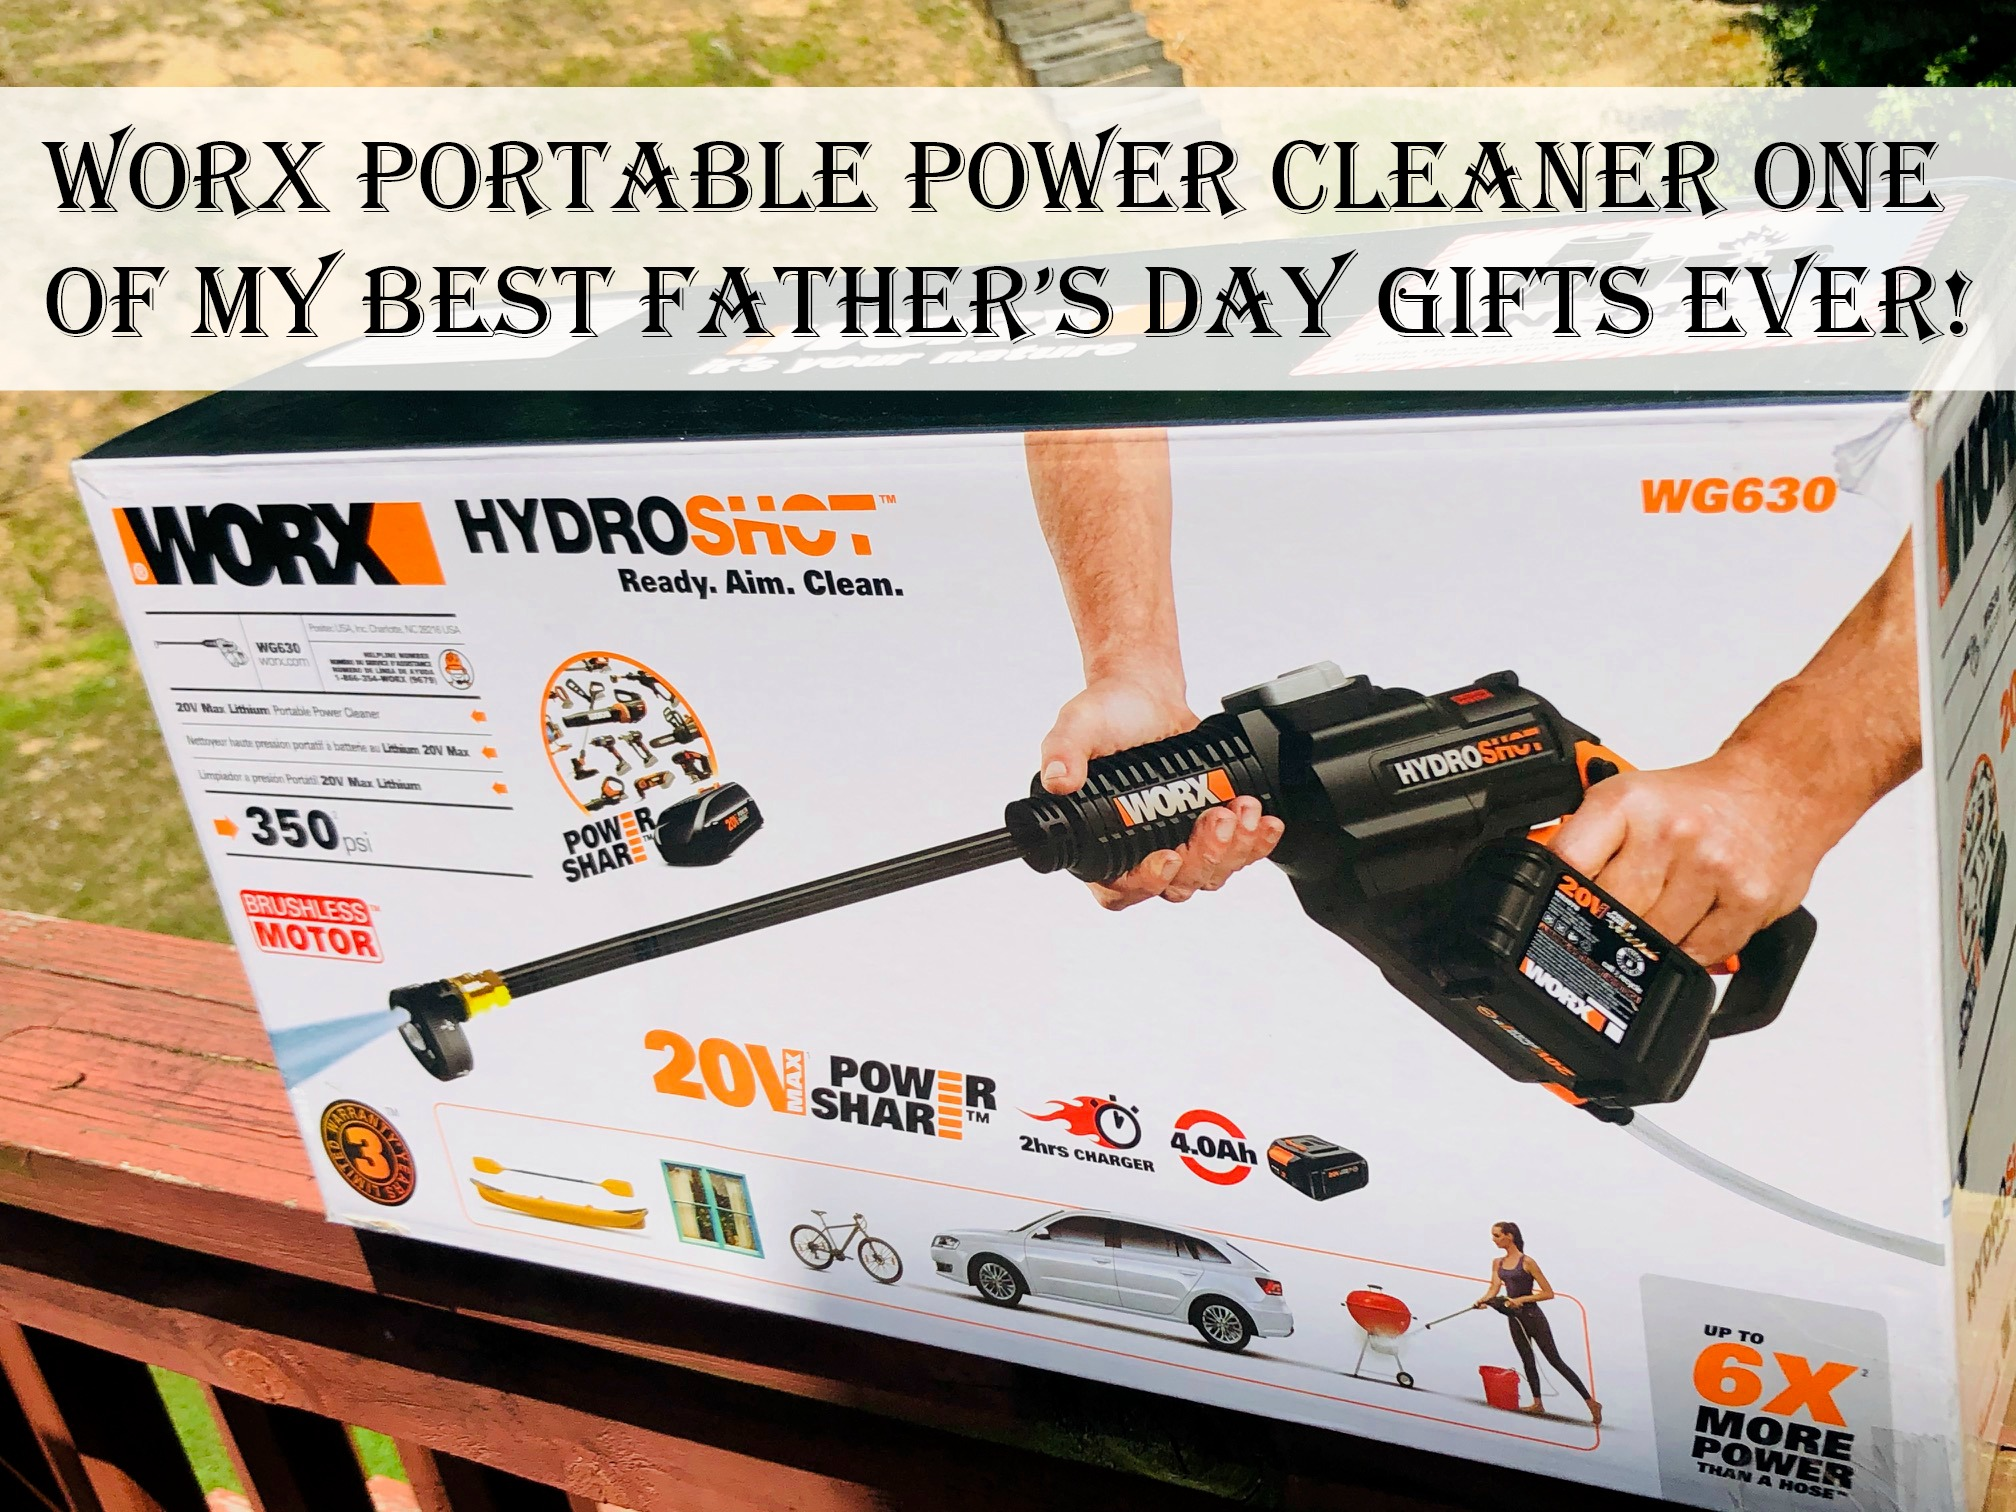 Worx Portable Power Cleaner One of My Best Father's Day Gifts Ever!